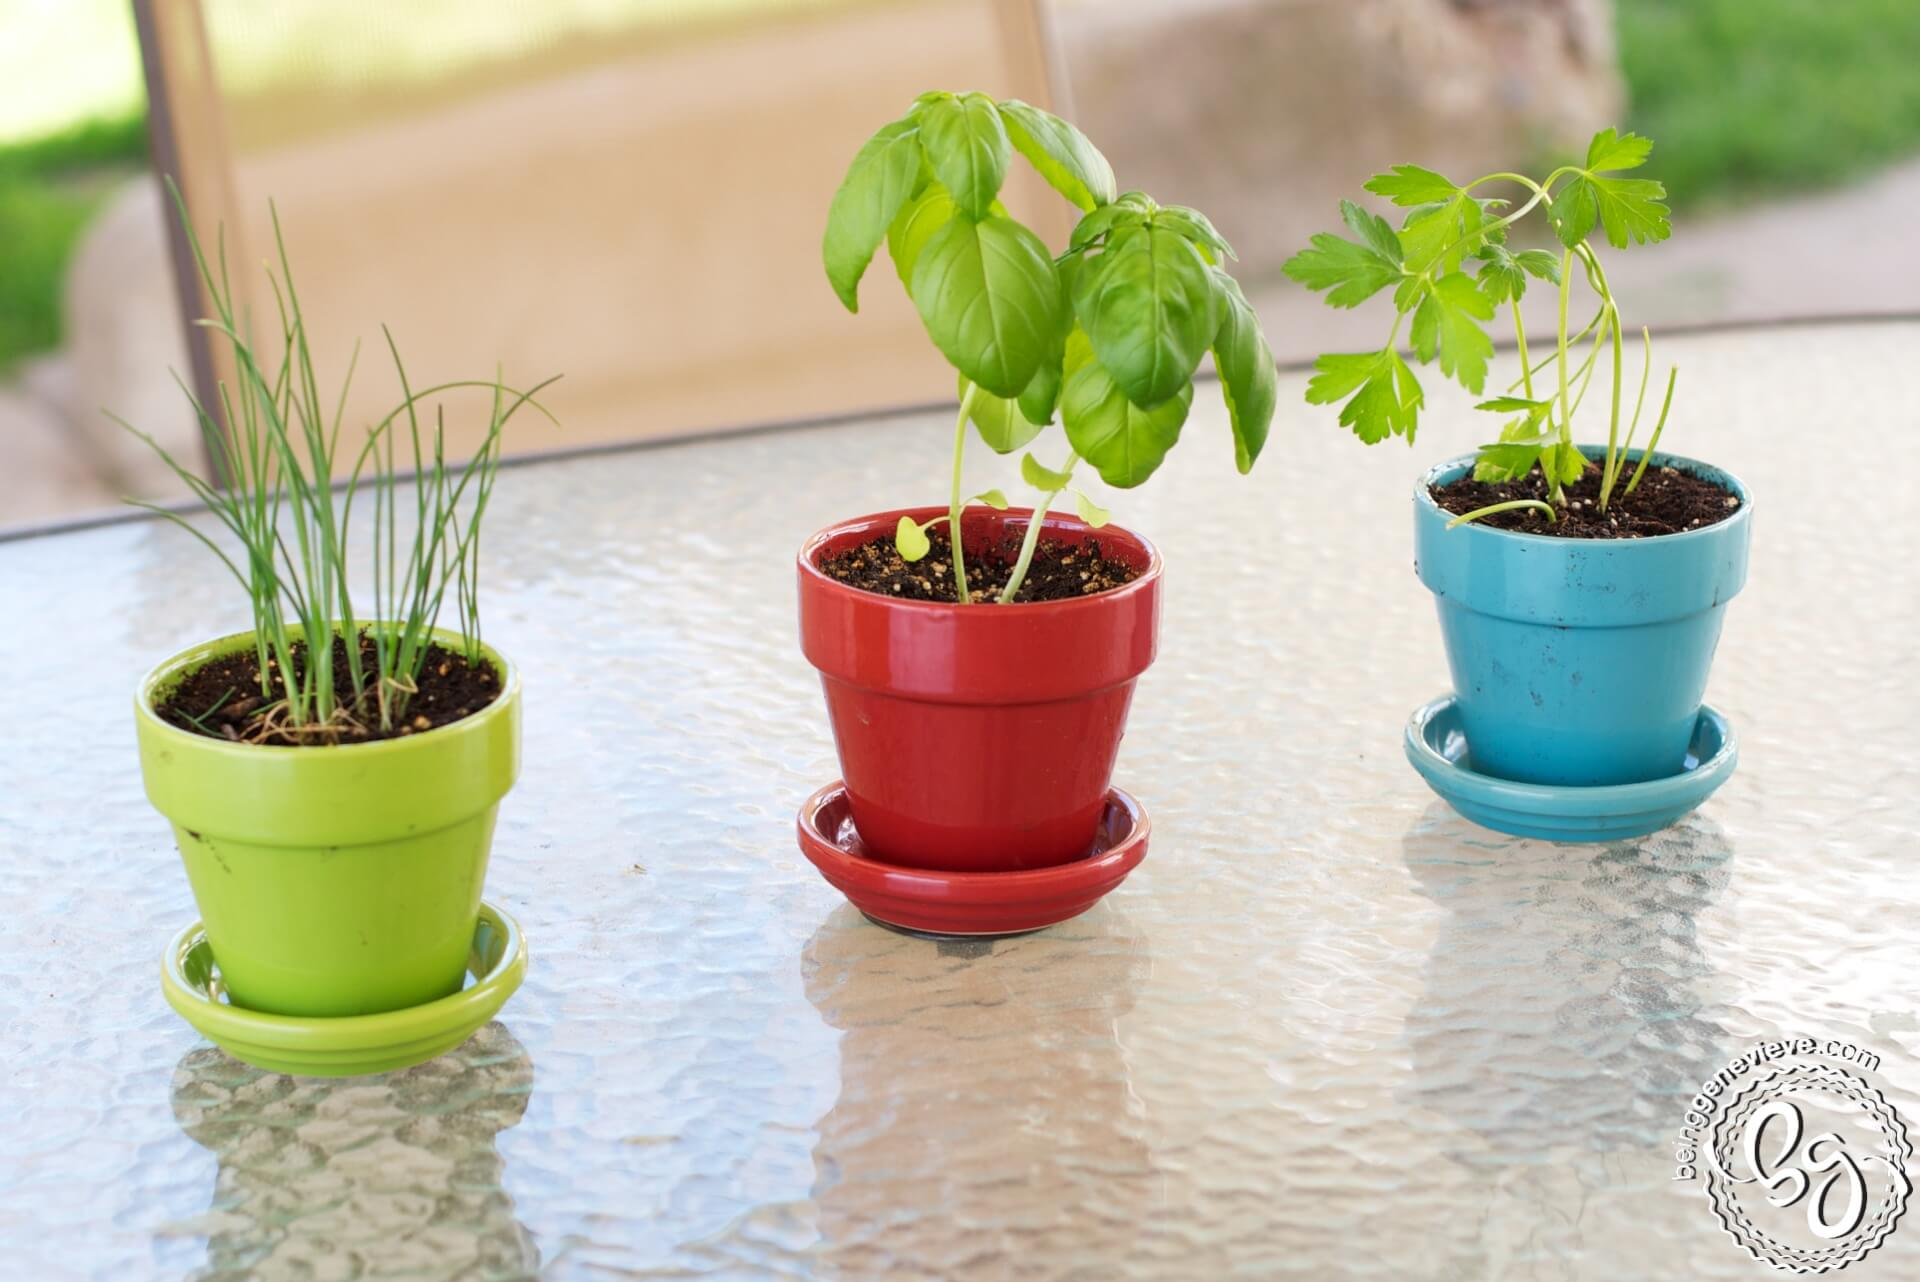 Charming Small Herb Pots Part - 12: The Herb Centerpiece The Herb Centerpiece